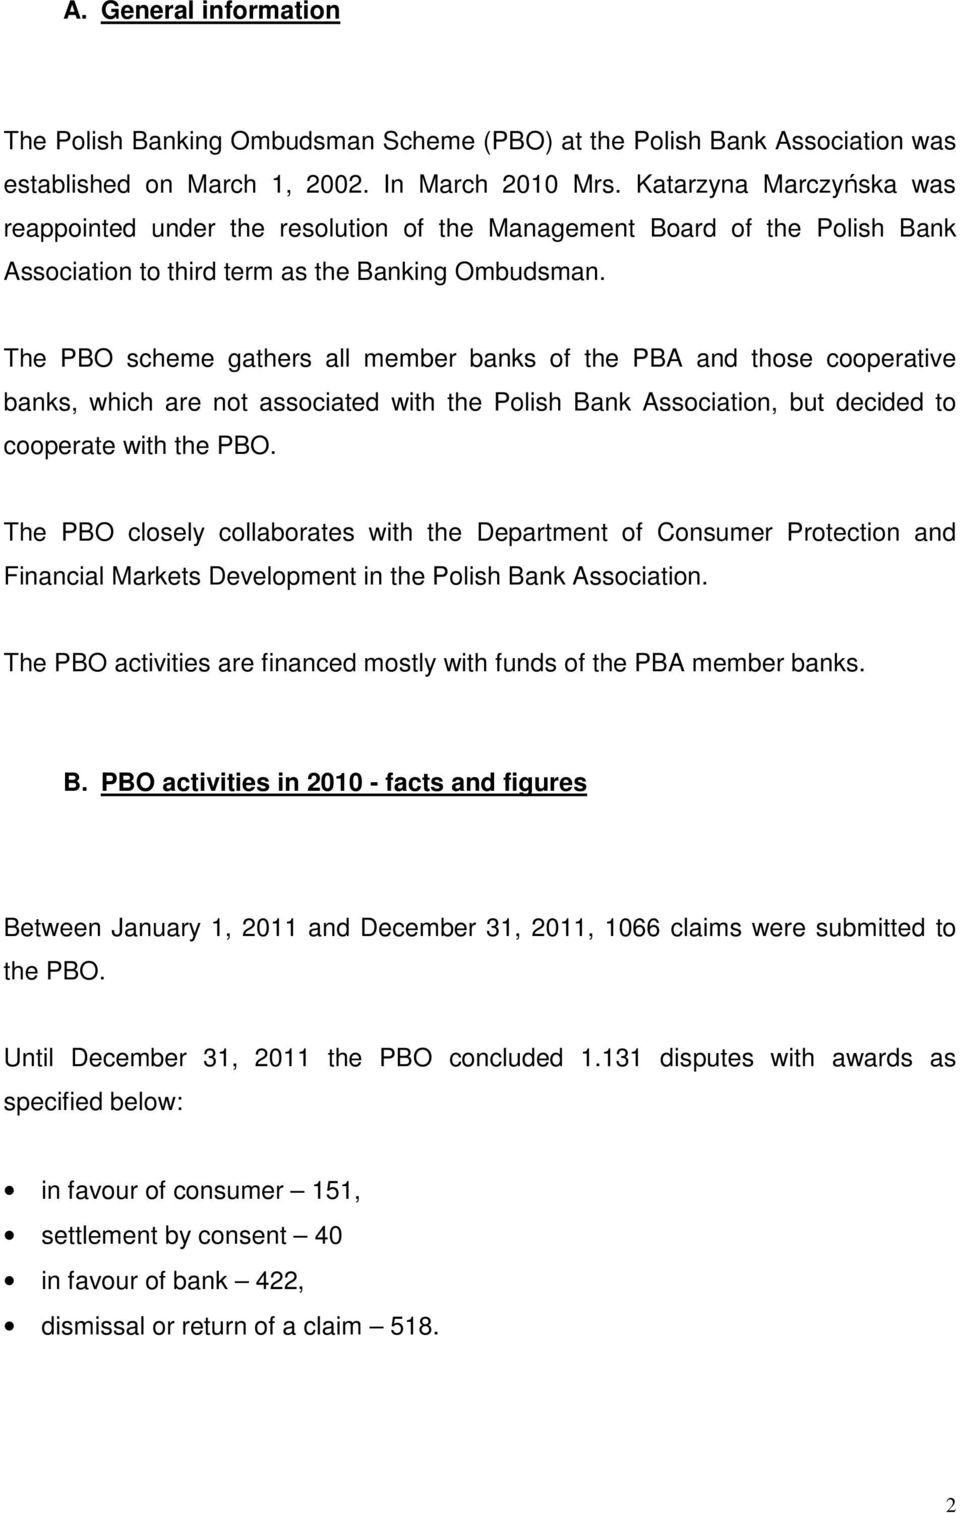 The PBO scheme gathers all member banks of the PBA and those cooperative banks, which are not associated with the Polish Bank Association, but decided to cooperate with the PBO.